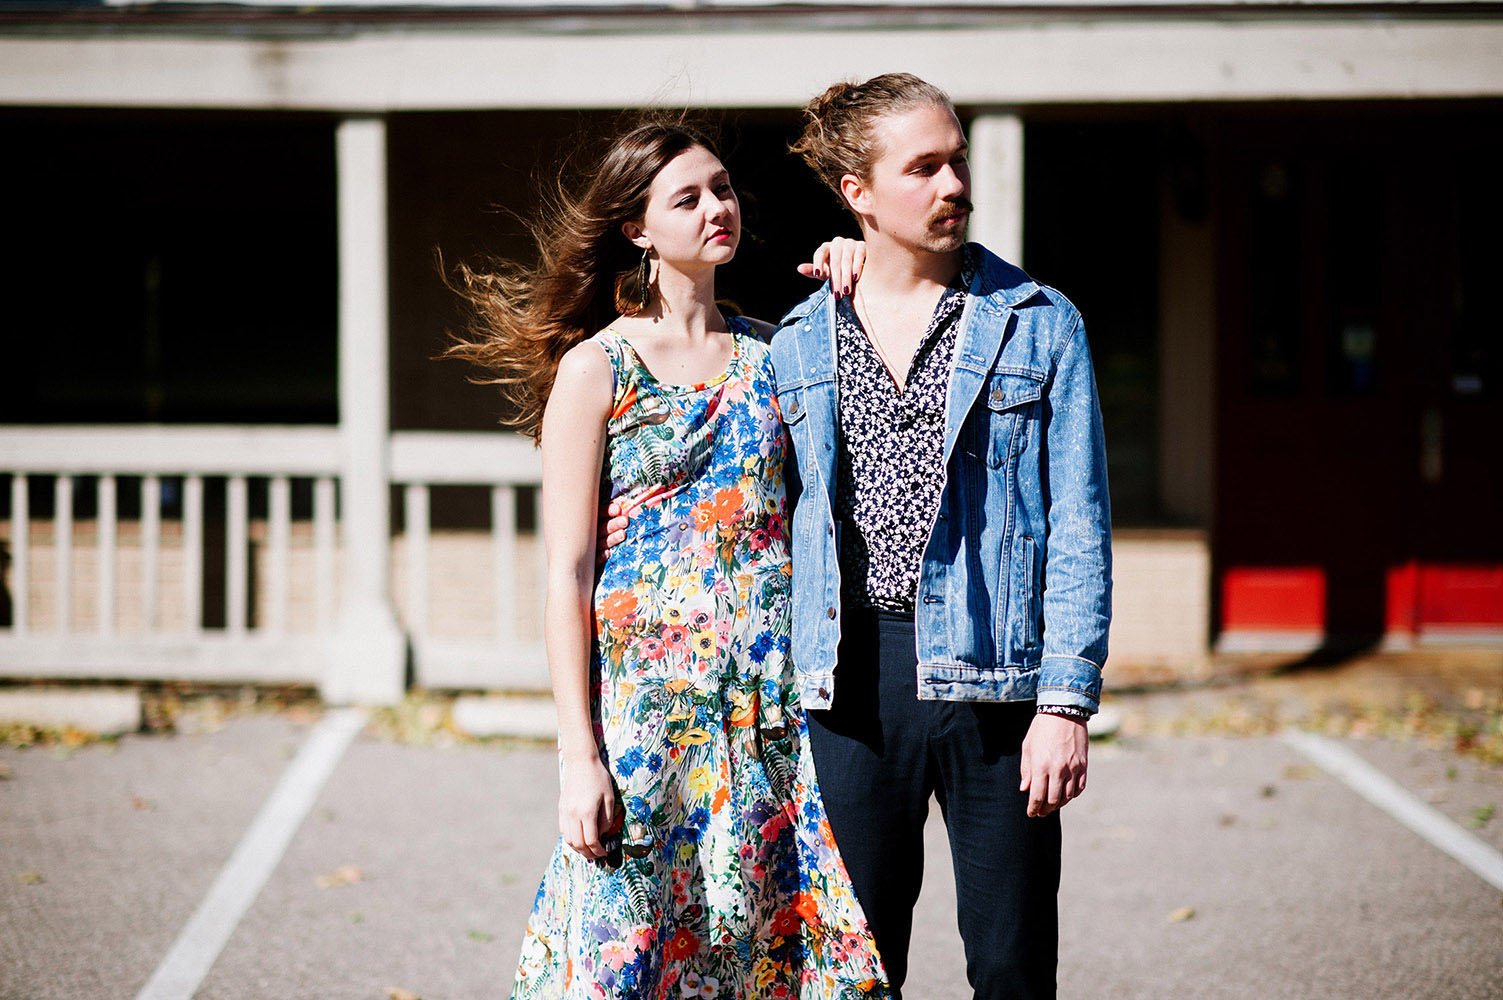 Girl with brown hair blowing in the wind, peacock feather earrings and long floral print dress and guy with man bun and jean jacket